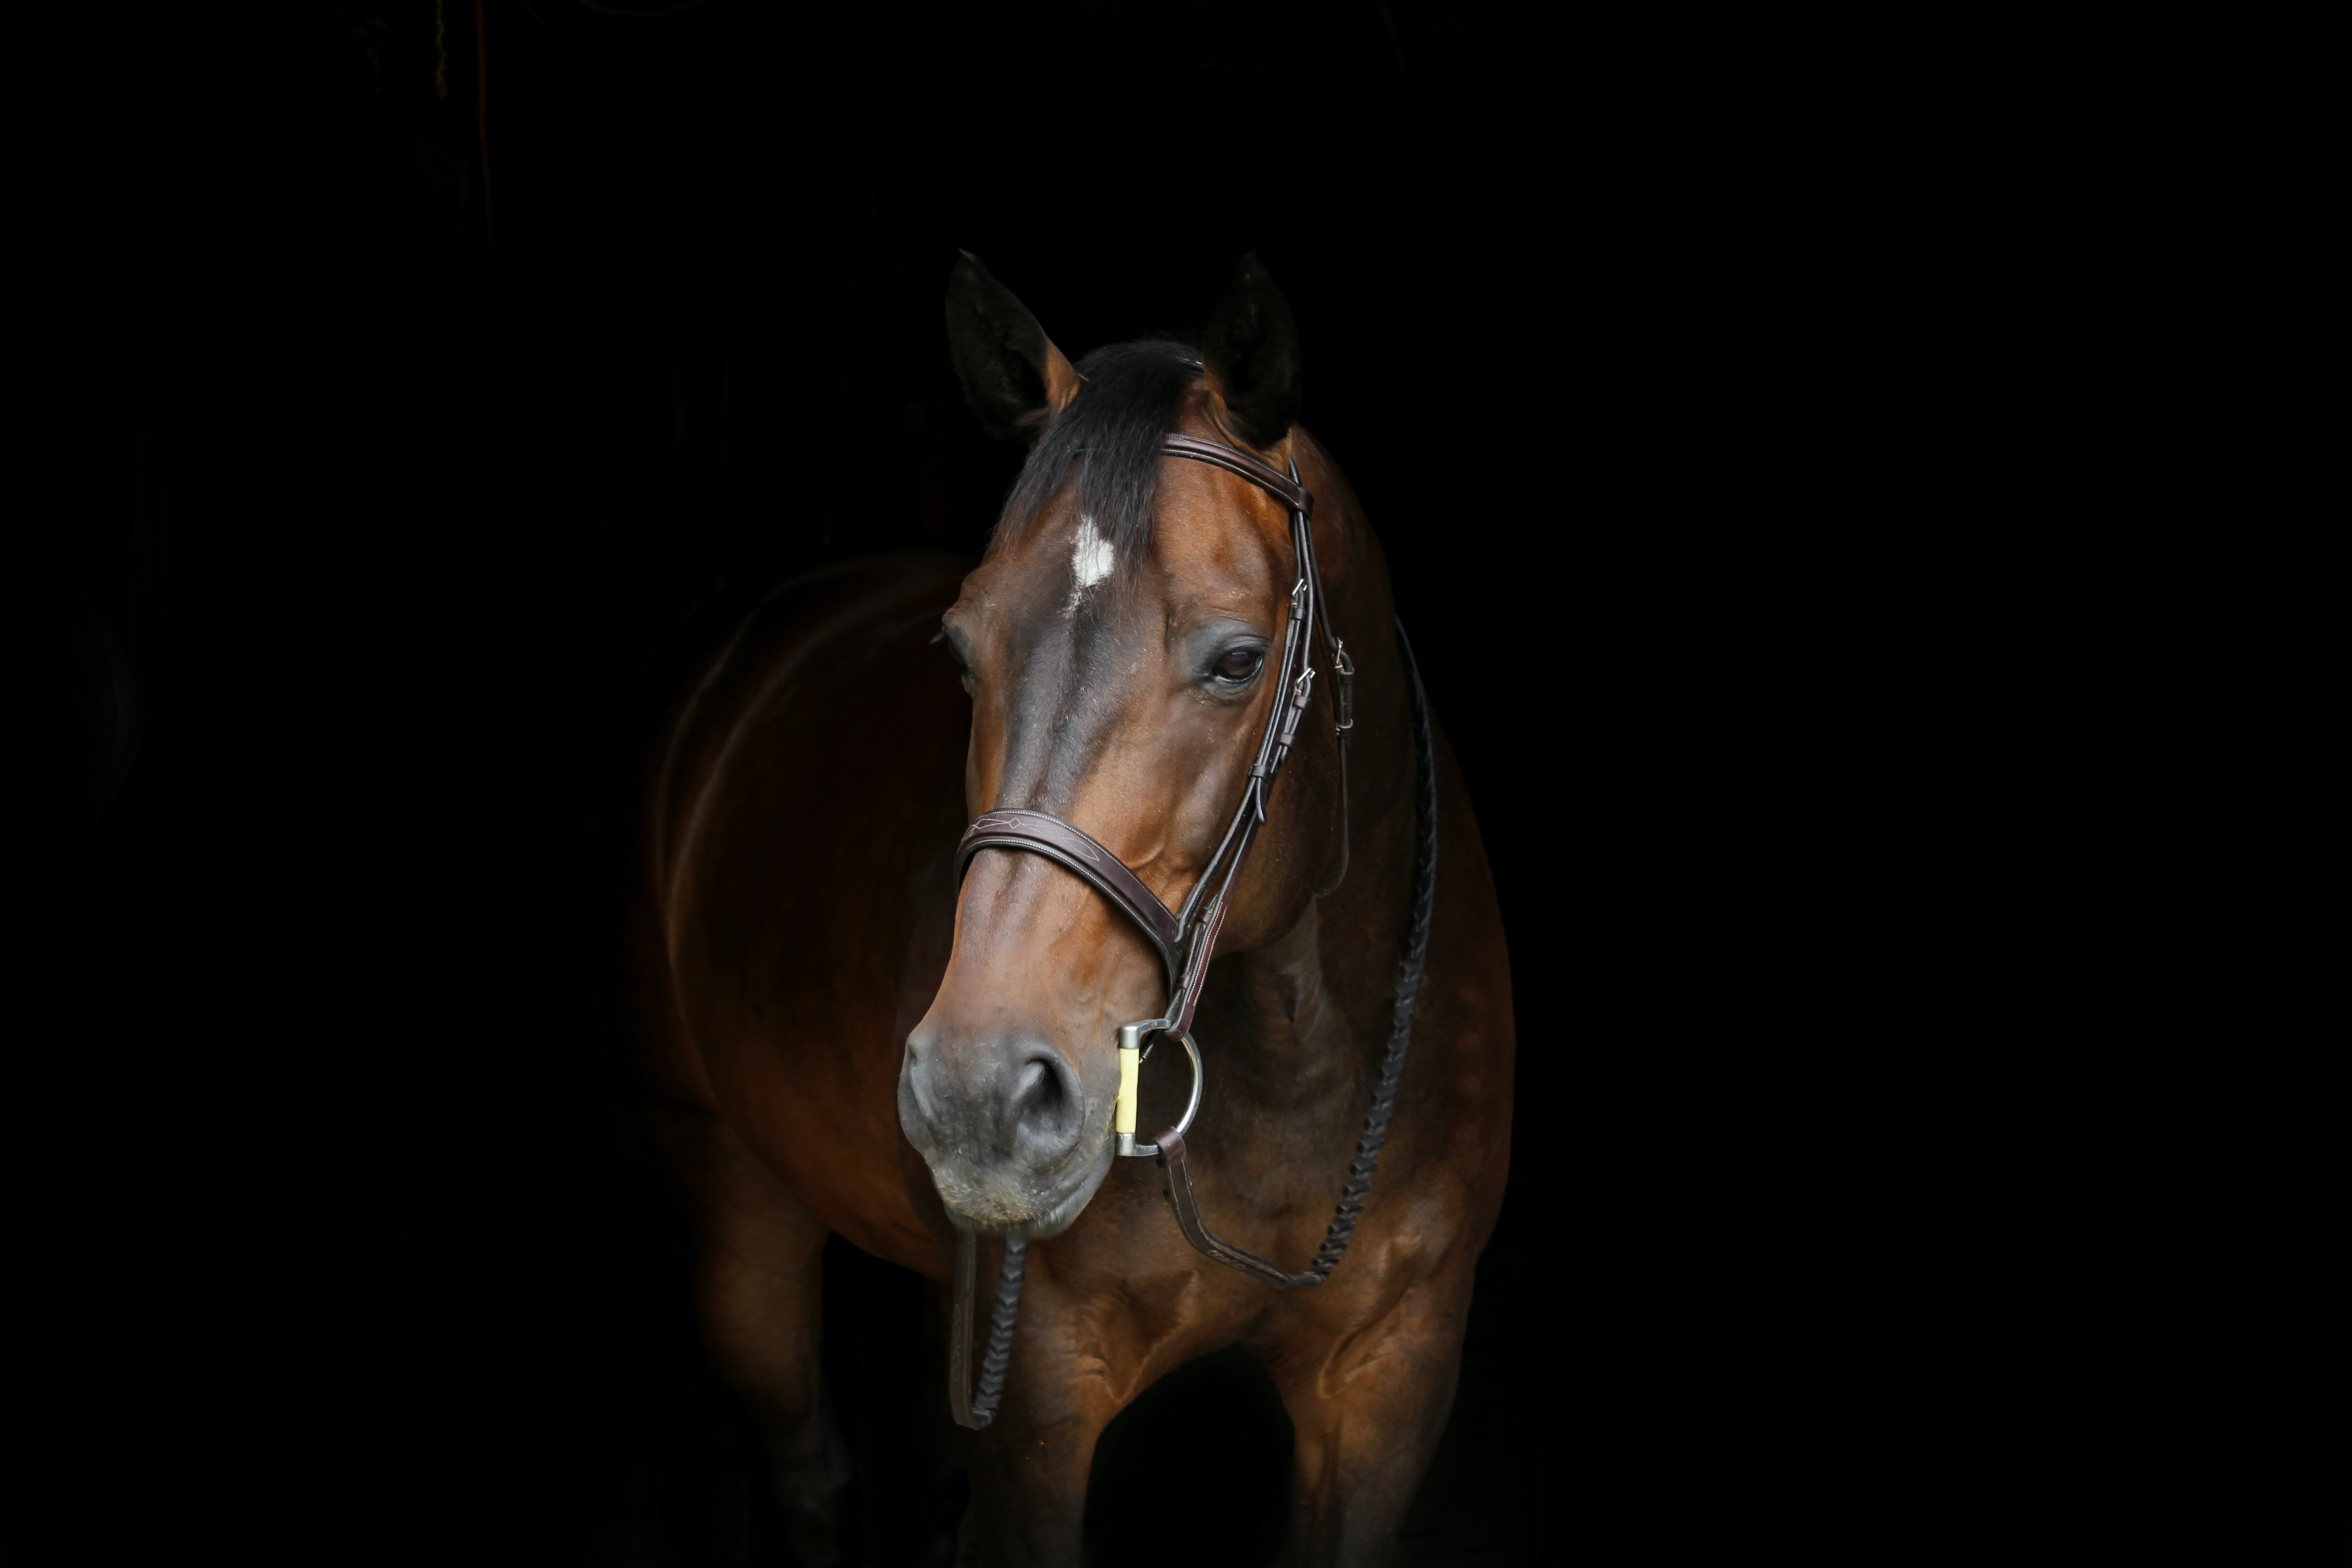 brown horse with white spot on forehead